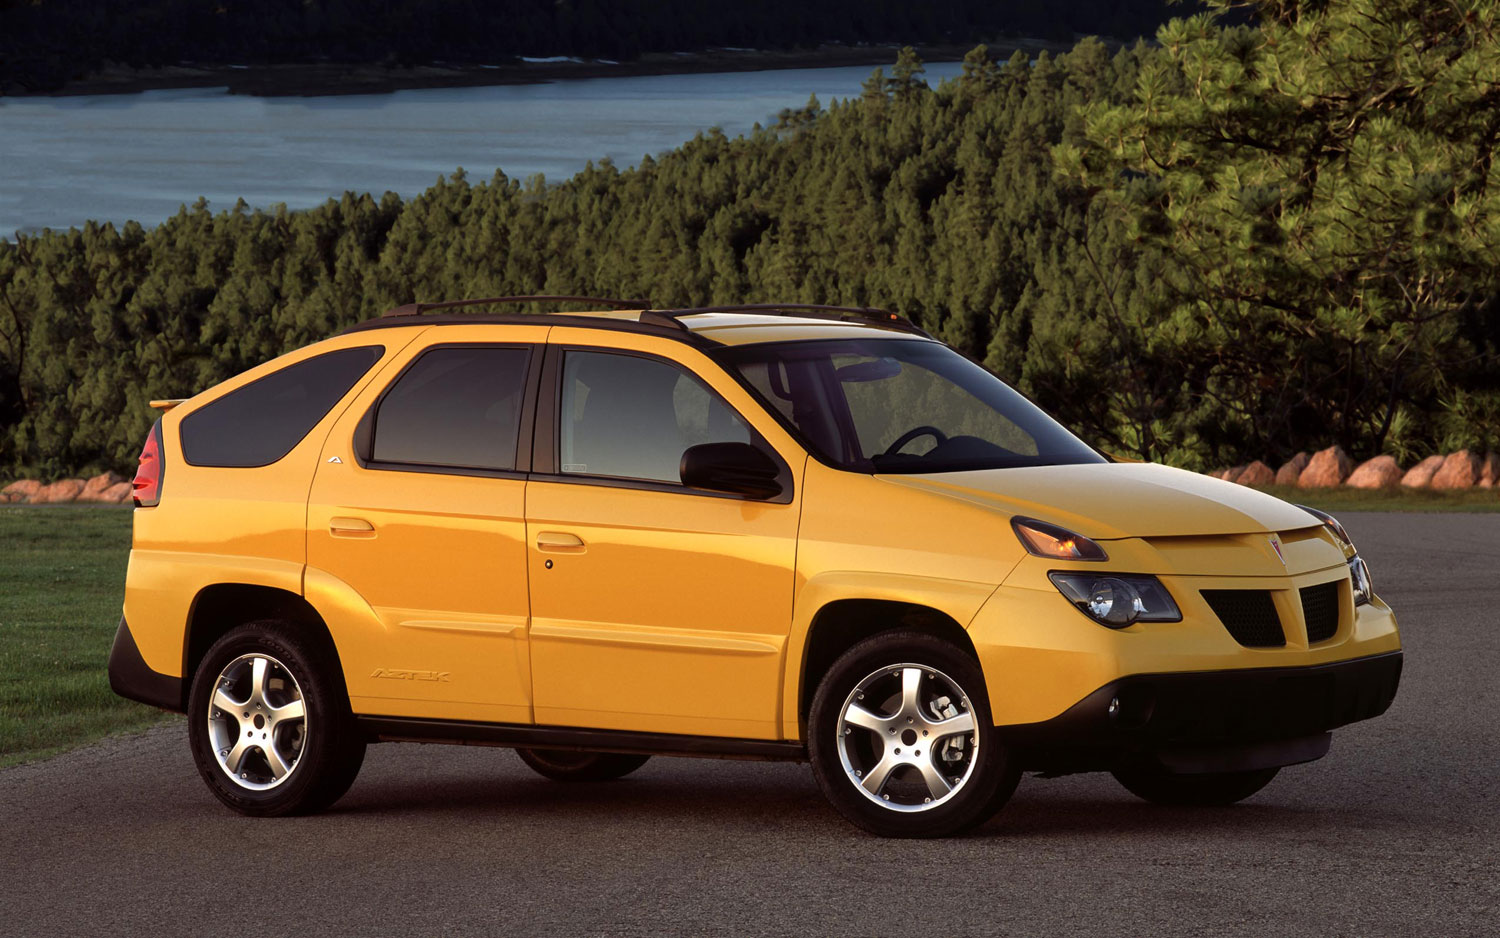 2001 Pontiac Aztek & Oil Reset » Blog Archive » 2001 PONTIAC Aztek Maintenance Light ...